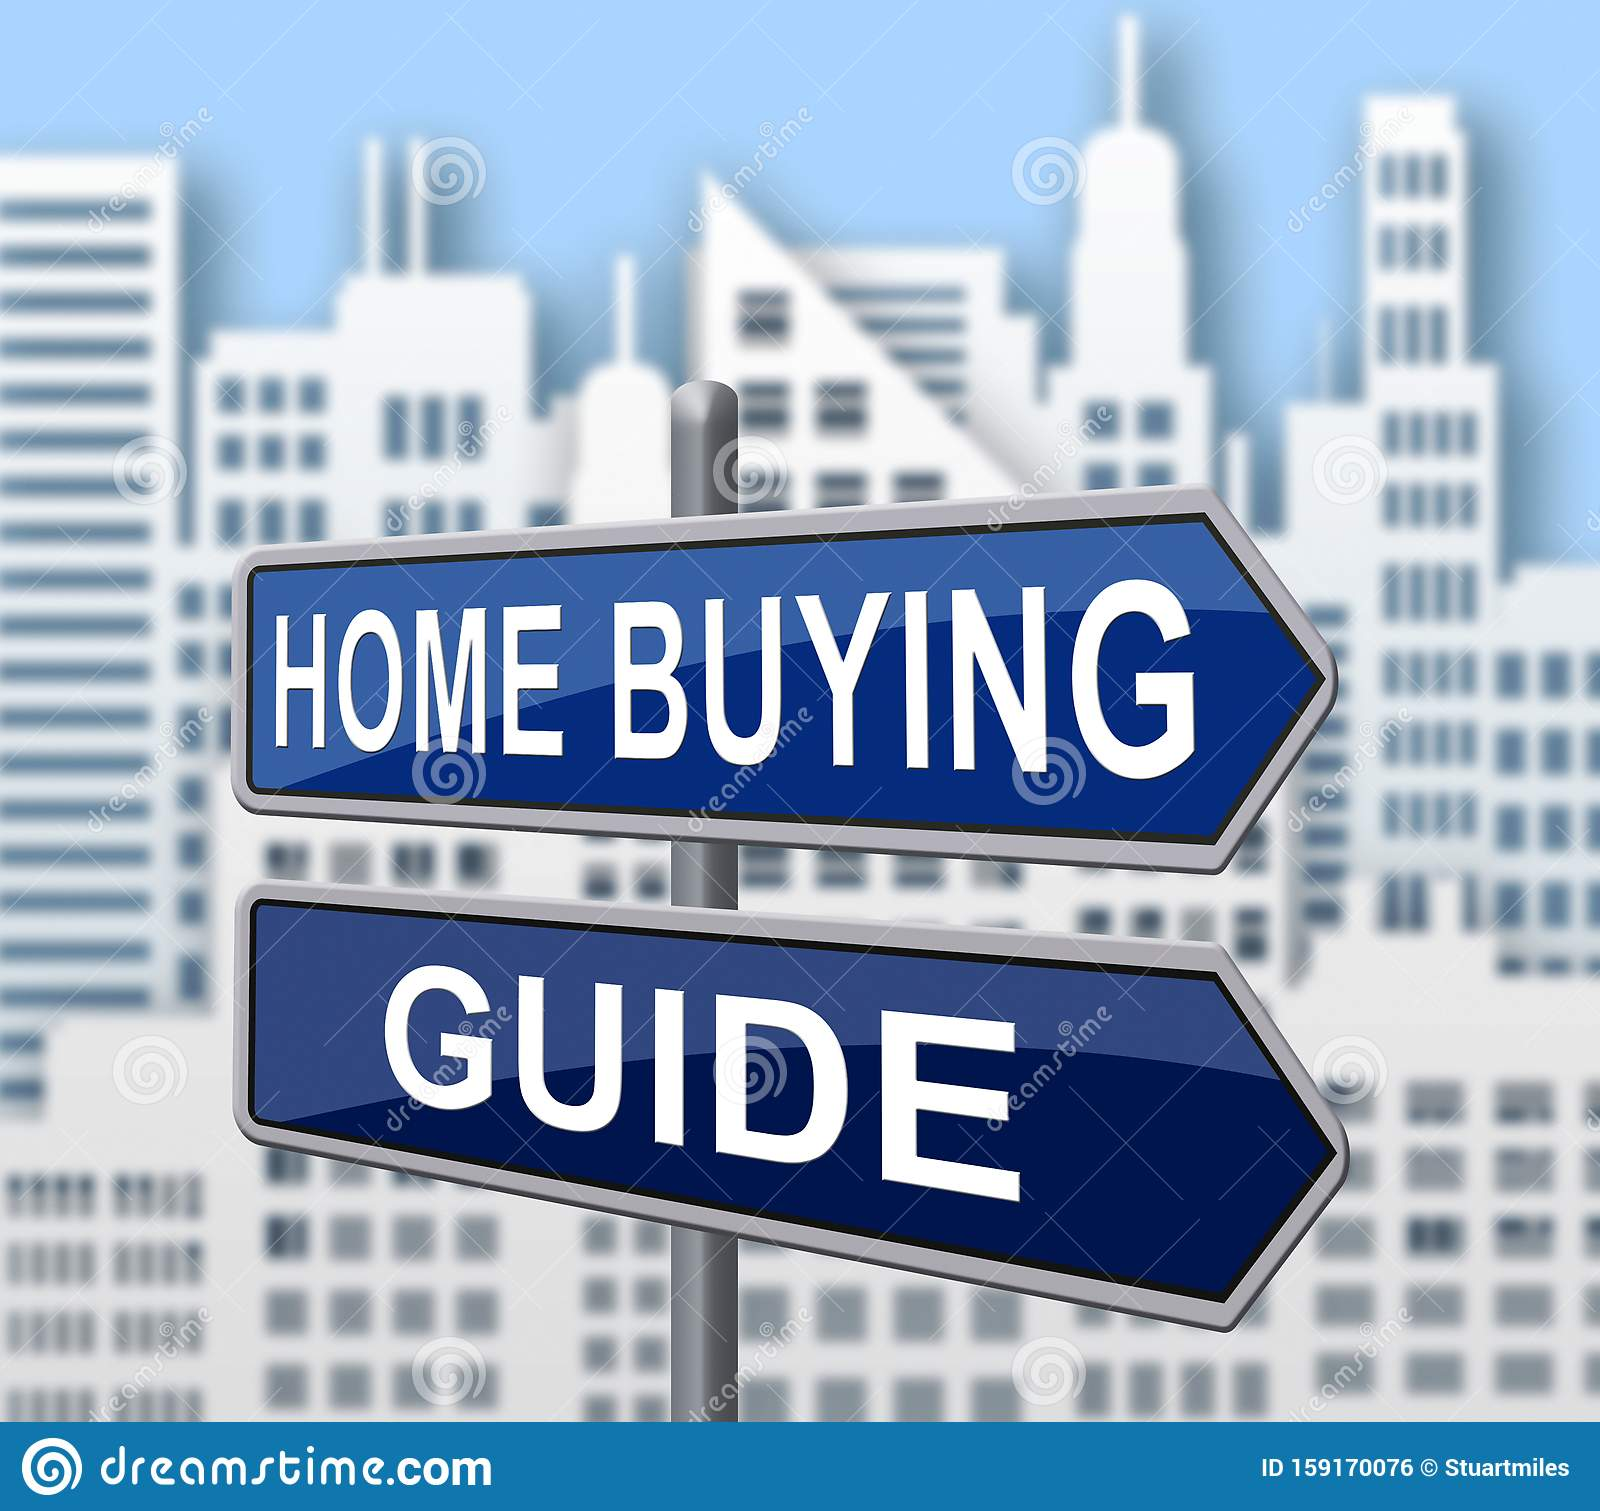 Home Buying Guide Sign Depicts Evaluation Of Buying Real ...